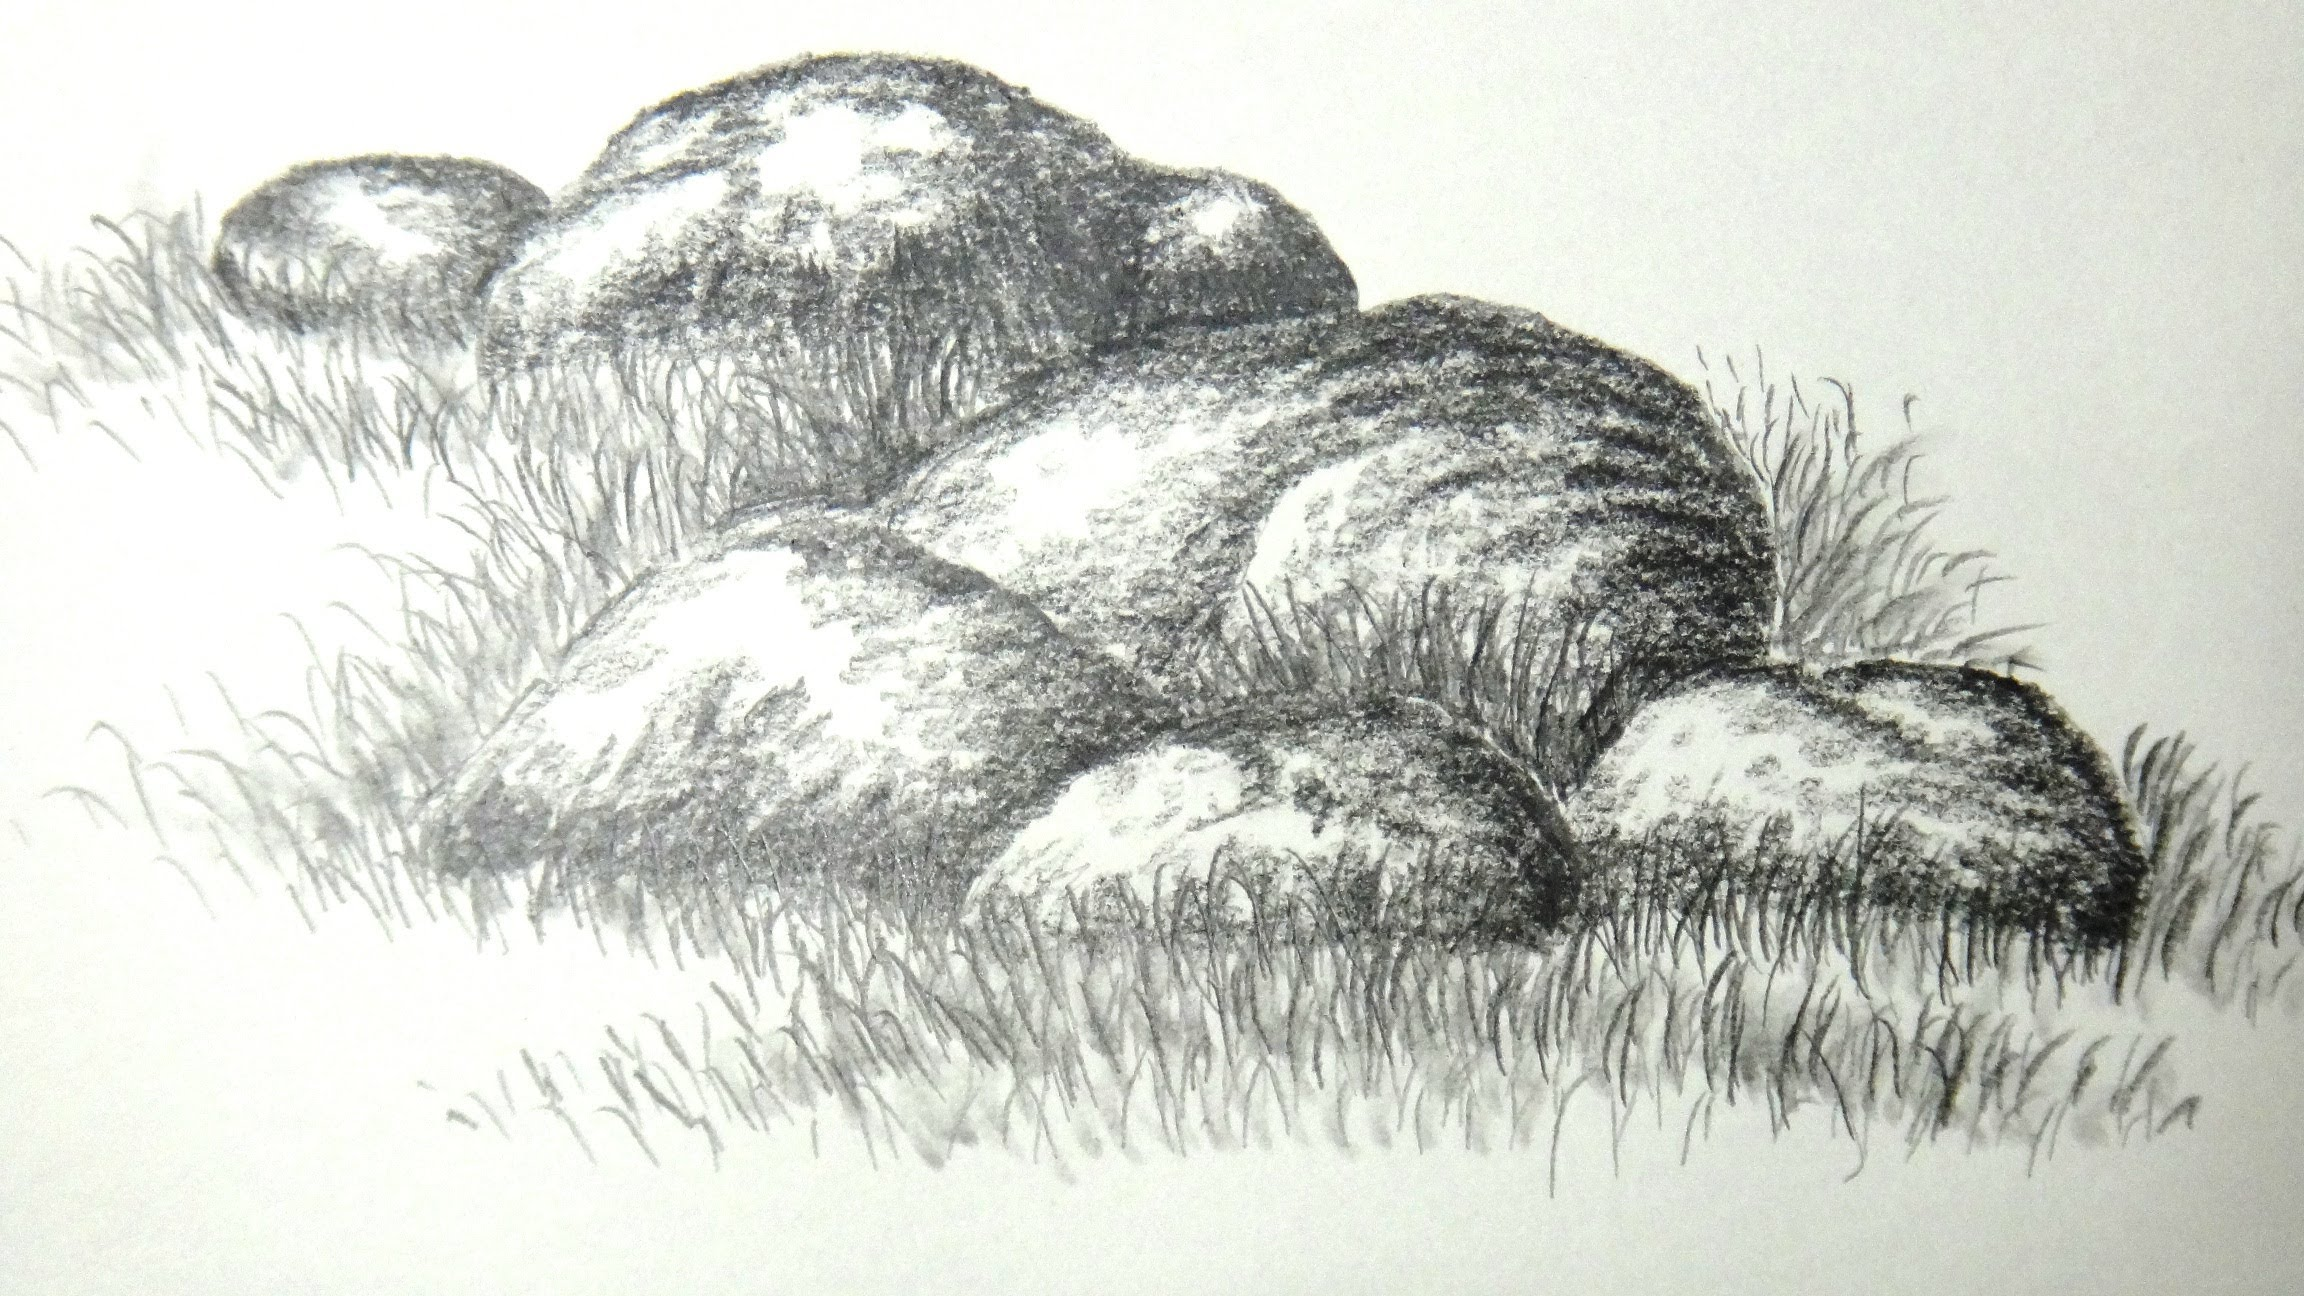 Drawn rock Pencil  rocks stones draw